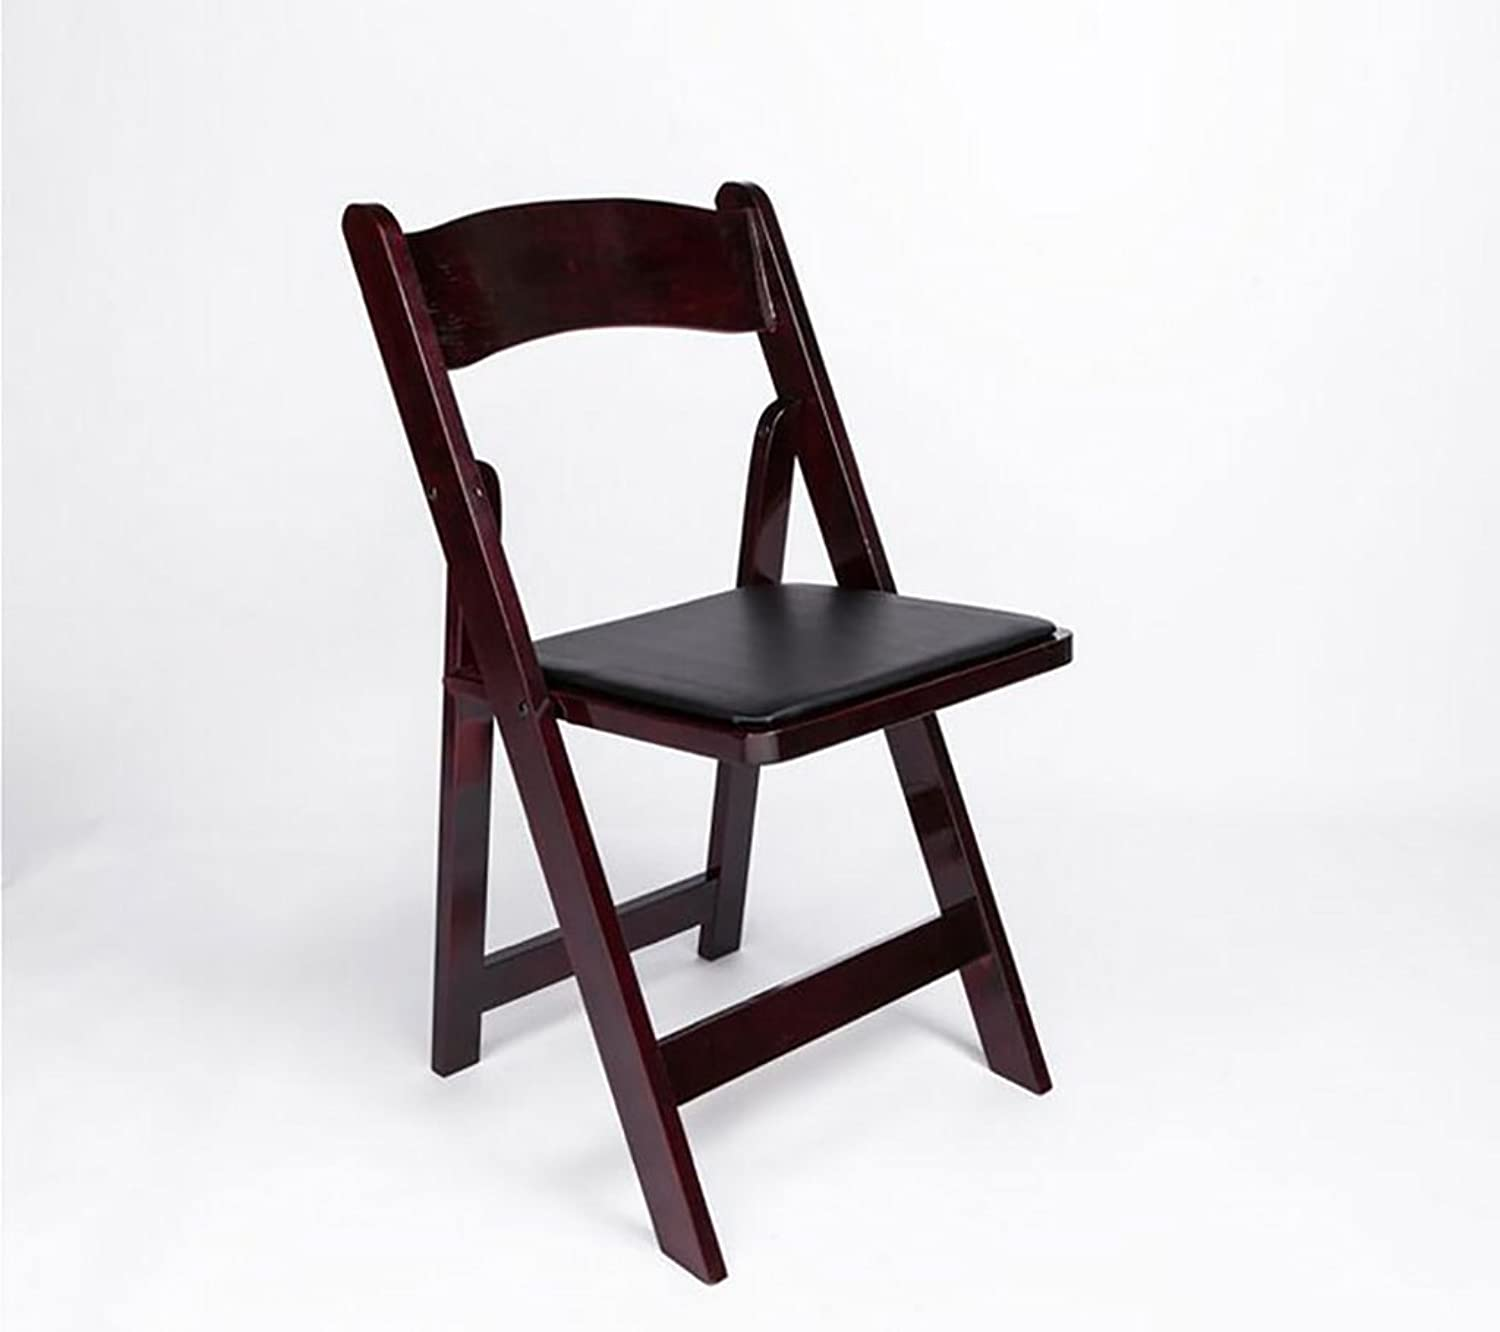 Chair Folding Chair Backrest Table Dining Chair Folding Oak Solid Wood Chair (color   1 )